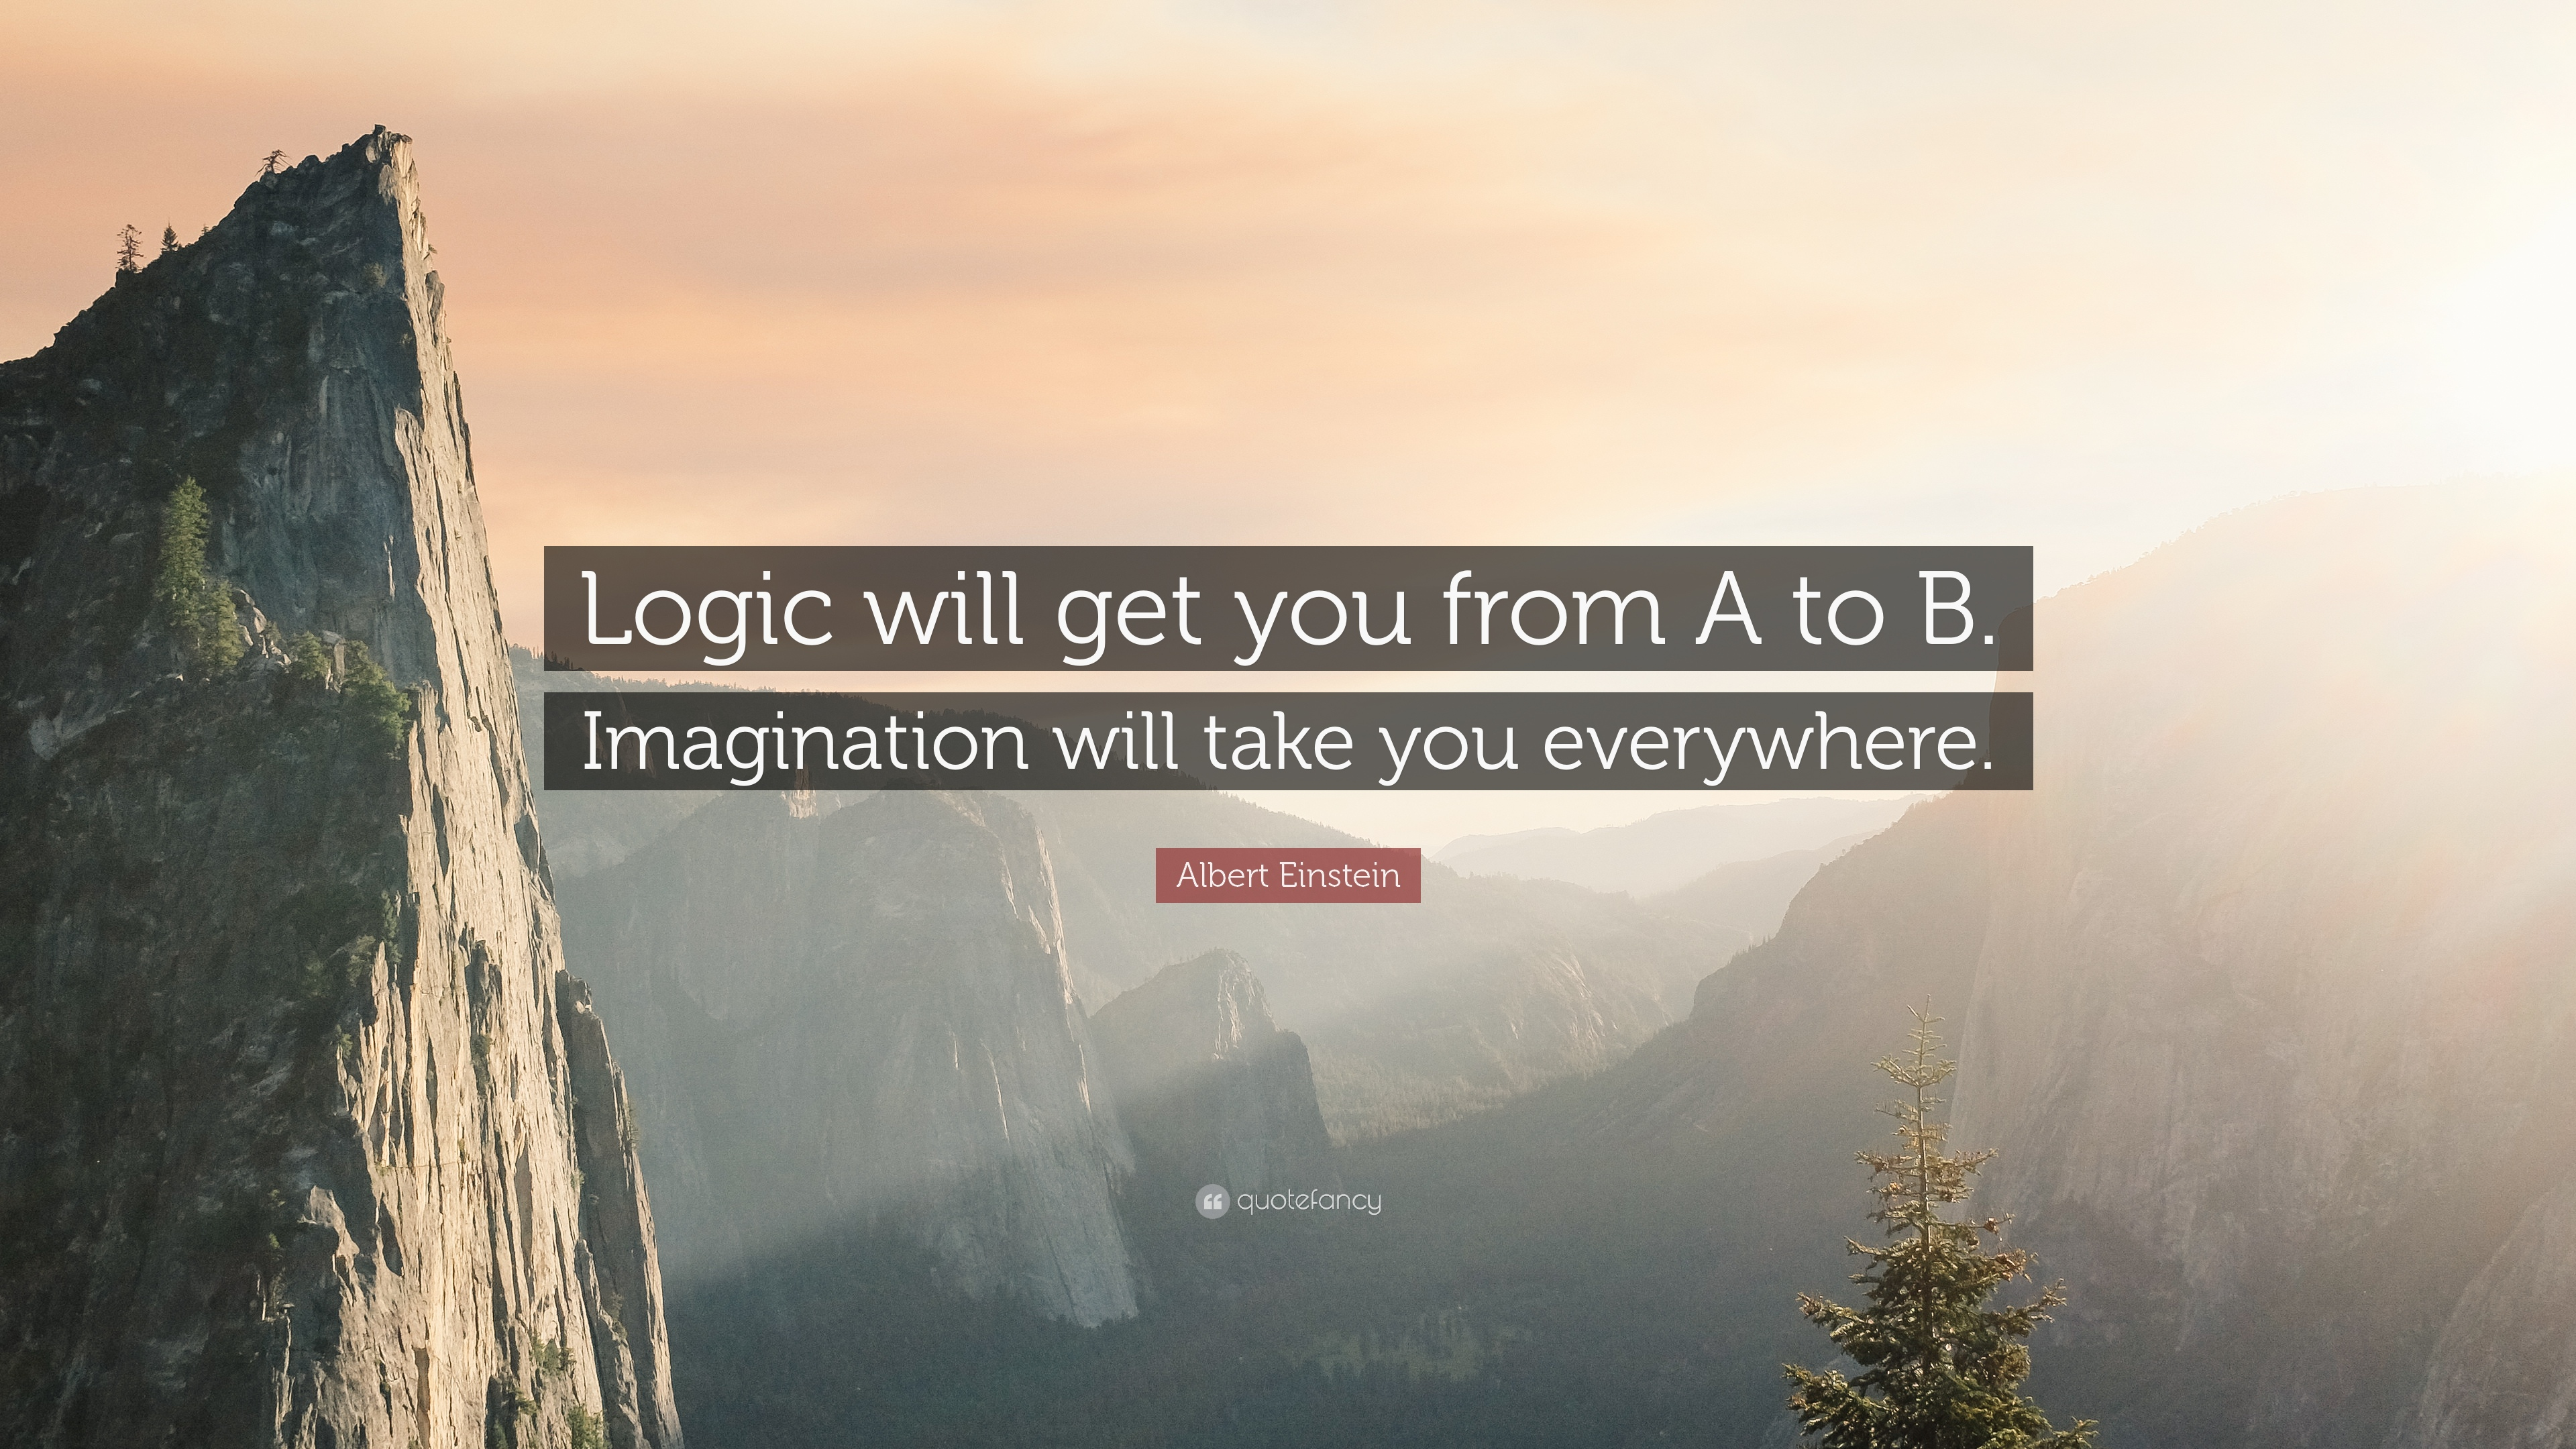 Albert Einstein Quote Logic Will Get You From A To B Imagination Will Take You Everywhere